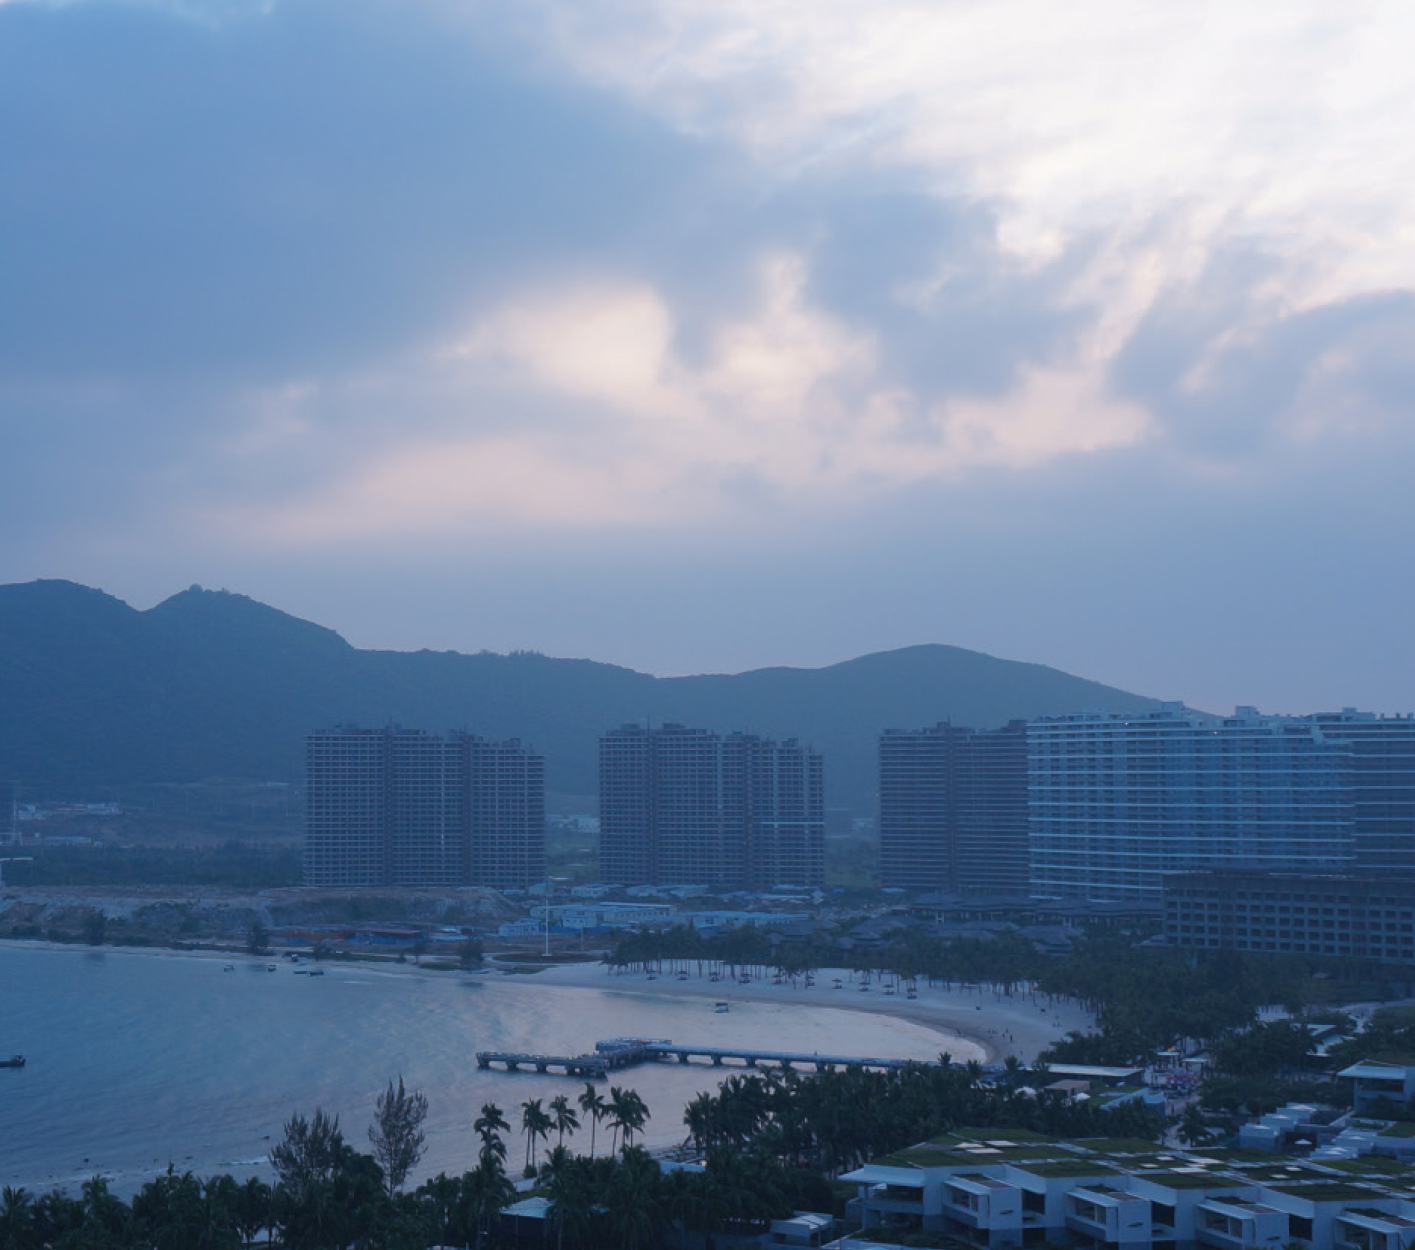 Hainan-is-primarily-a-tourist-destination,-but-could-be-home-to-the-country's-next-free-trade-zone-©Shi-Chi-Chiang